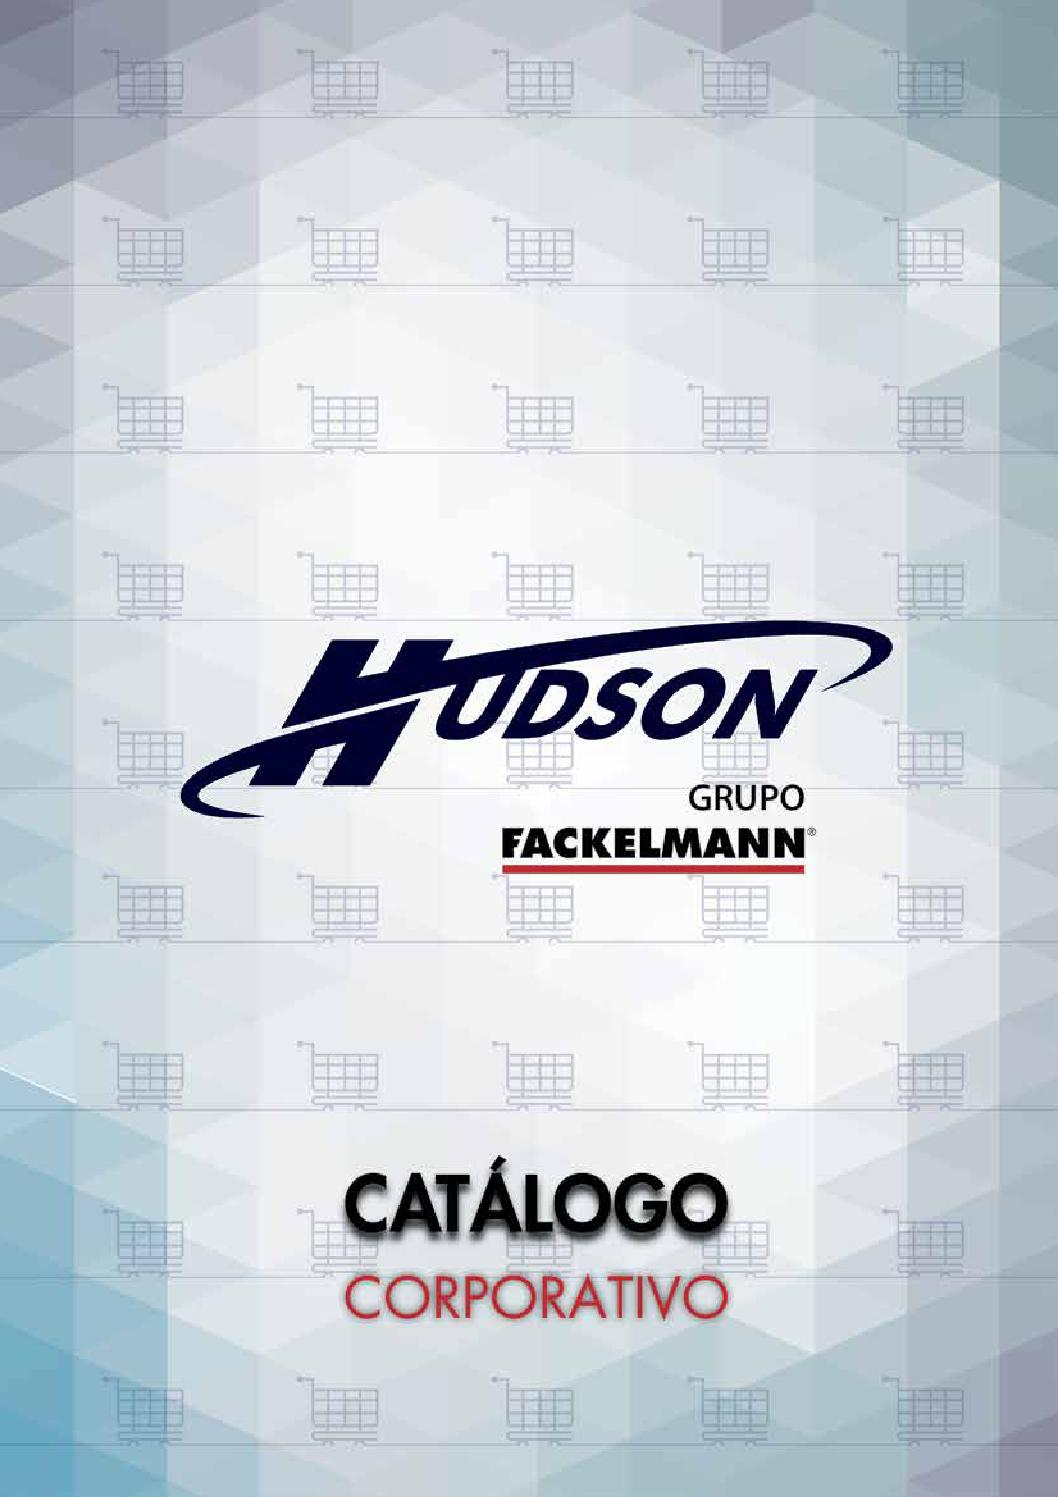 cat logo corporativo by hudson imports issuu. Black Bedroom Furniture Sets. Home Design Ideas